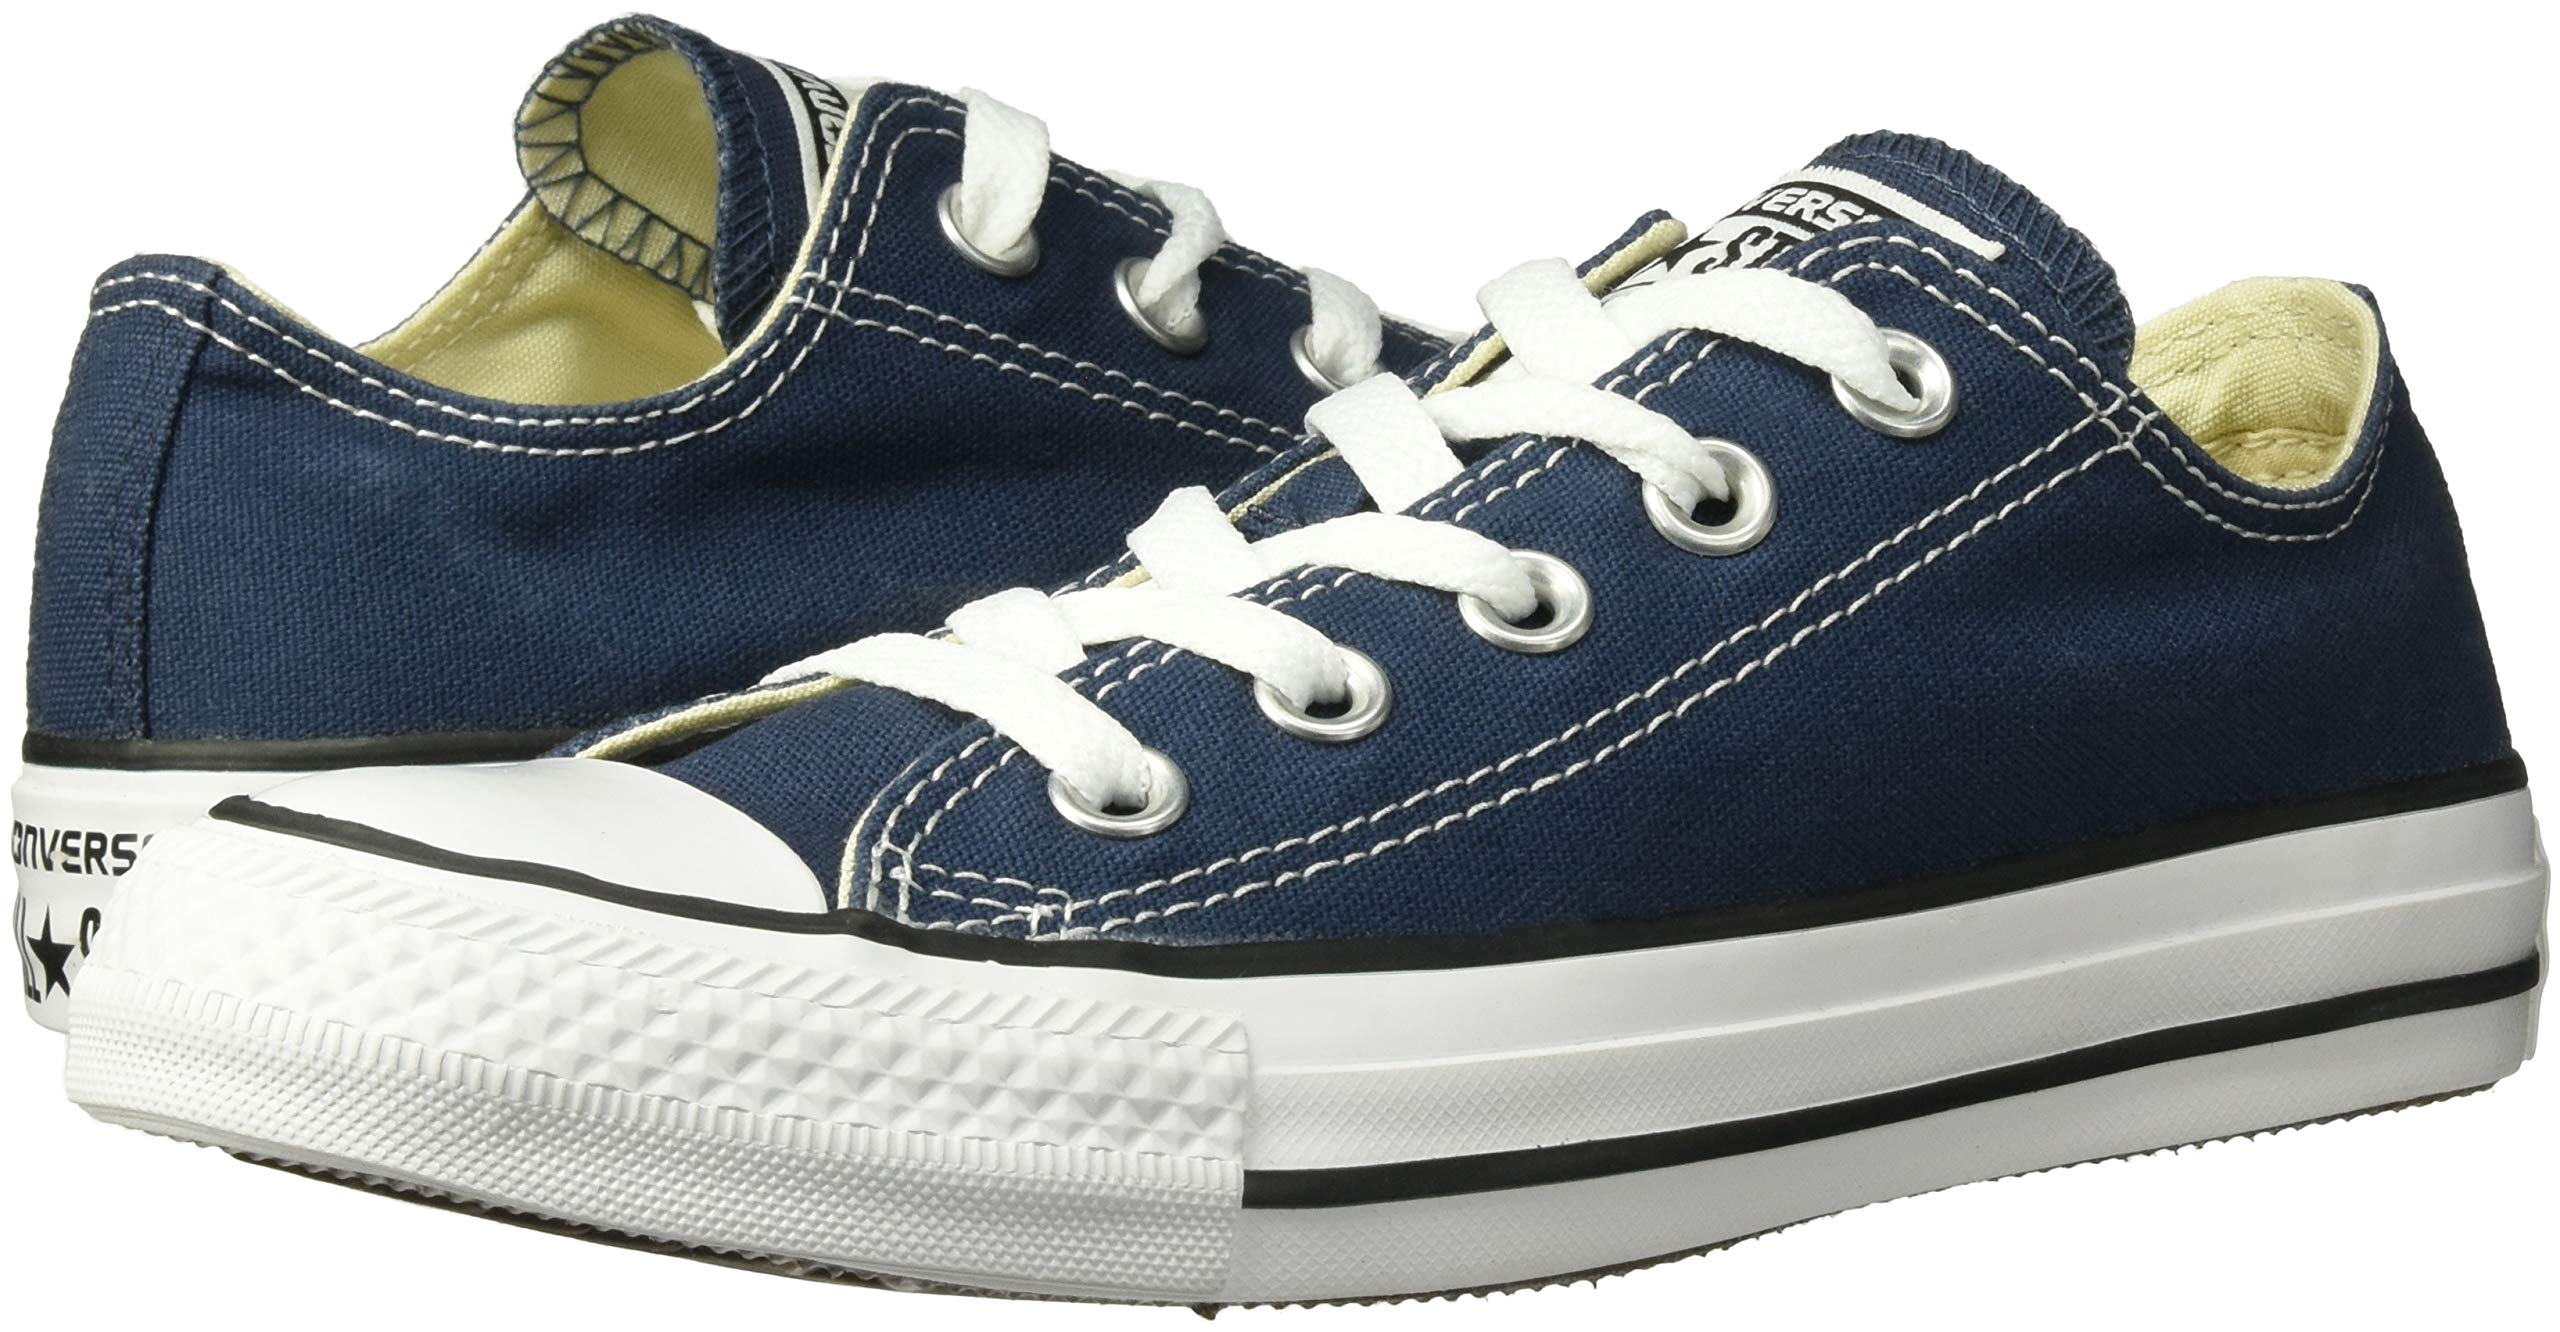 Converse Unisex Chuck Taylor All Star Low Top Navy Sneakers - 12MN-14WO B(M) US by Converse (Image #6)